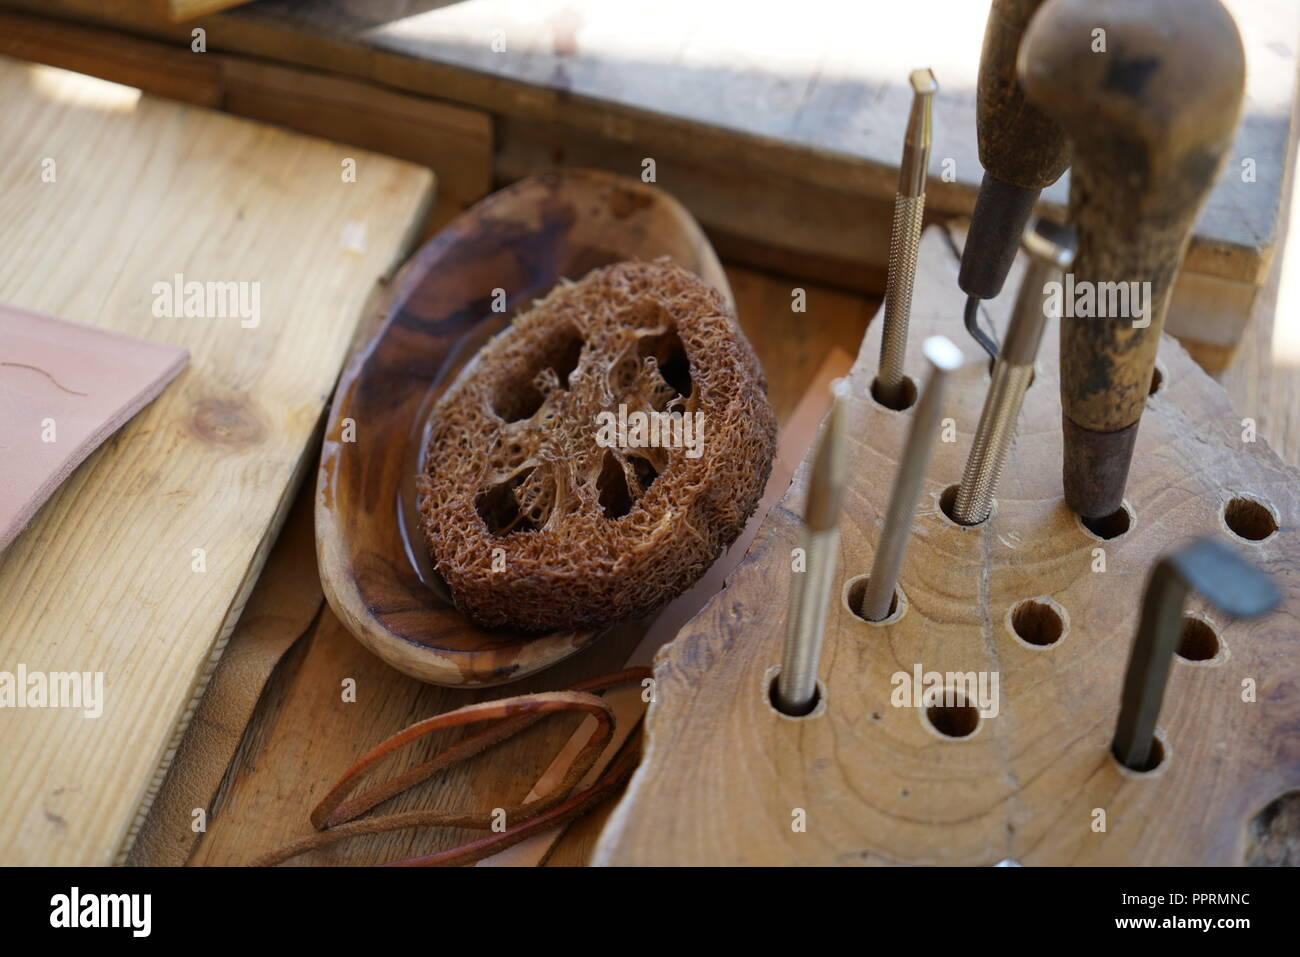 Editing and engraving leather is an old art of craftsmanship - Stock Image